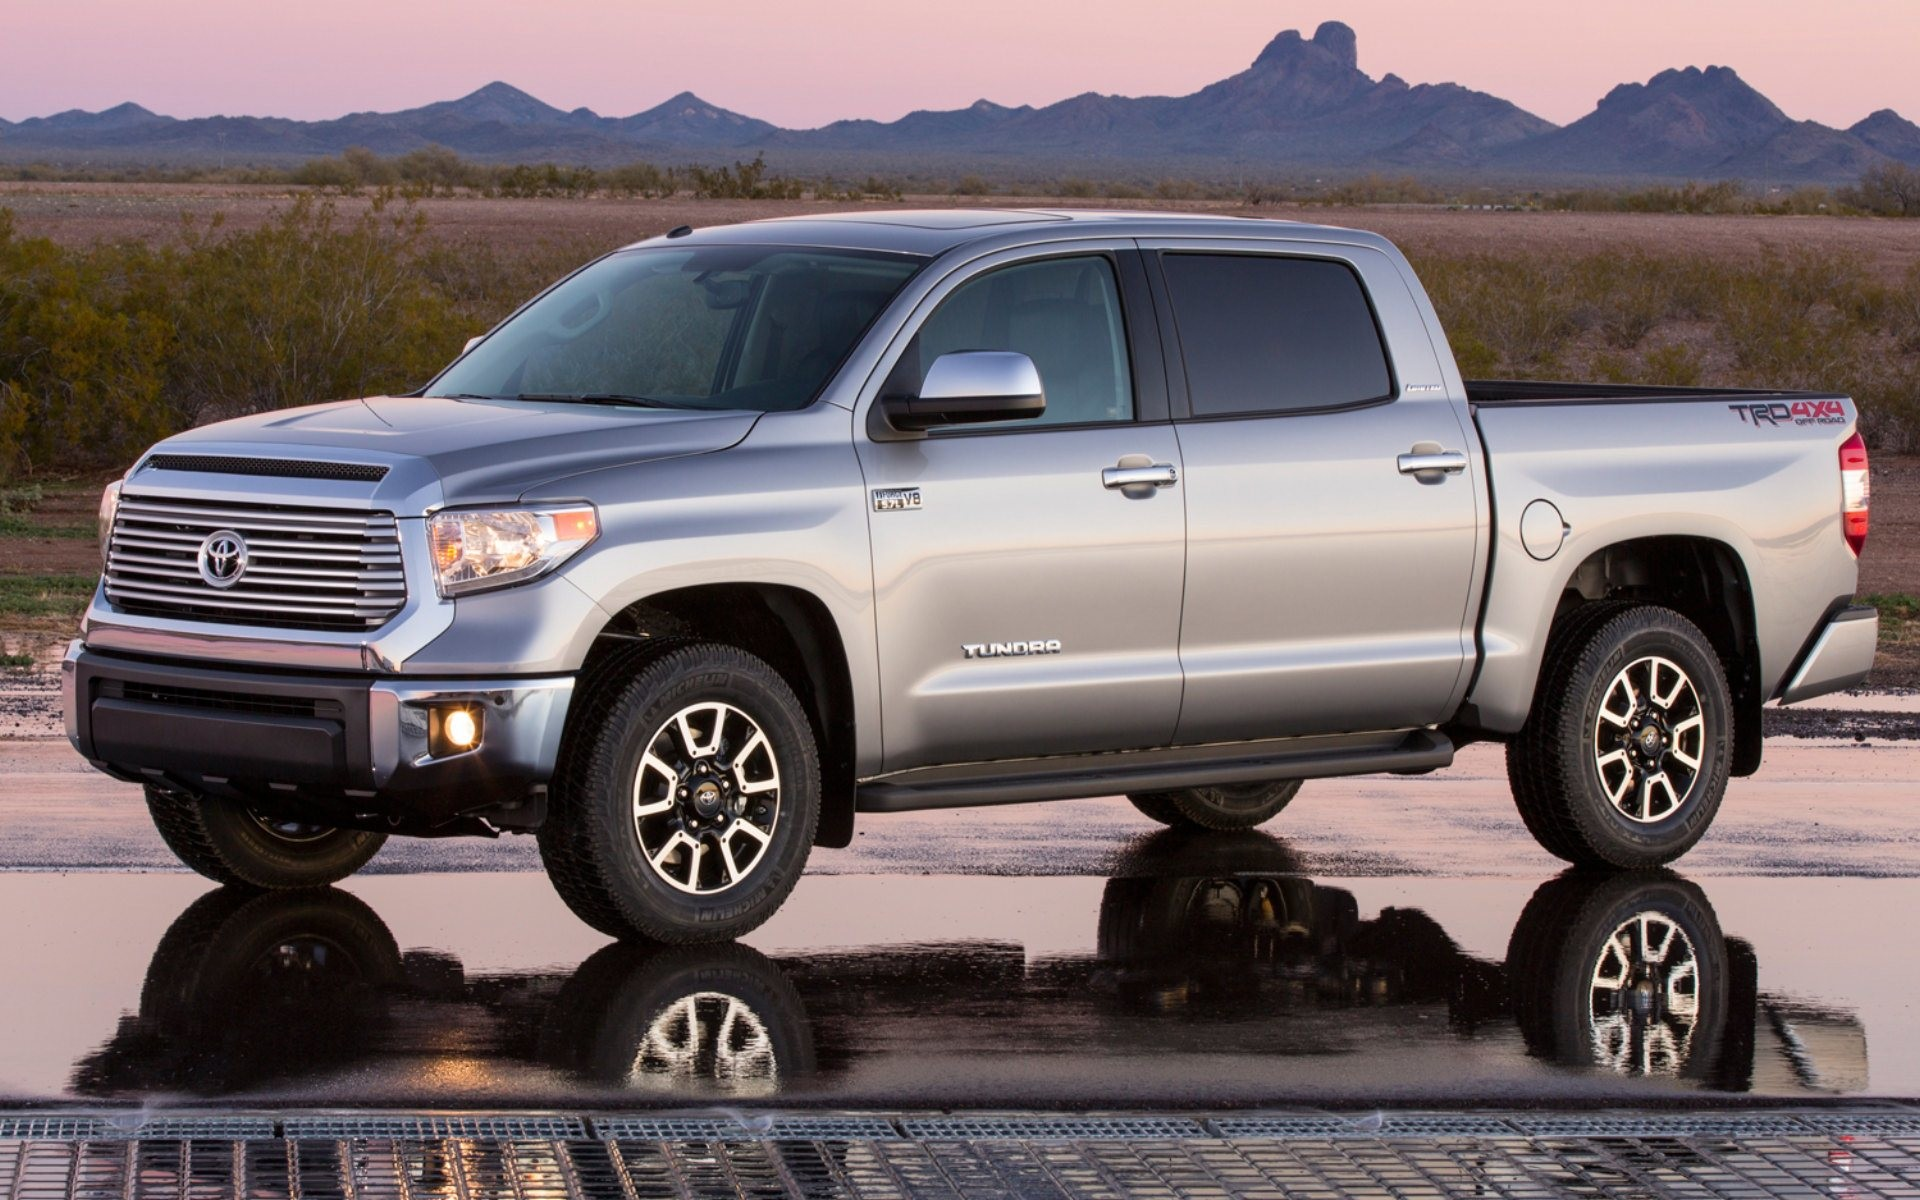 2014 Toyota Tundra Wallpapers | High Quality Wallpapers